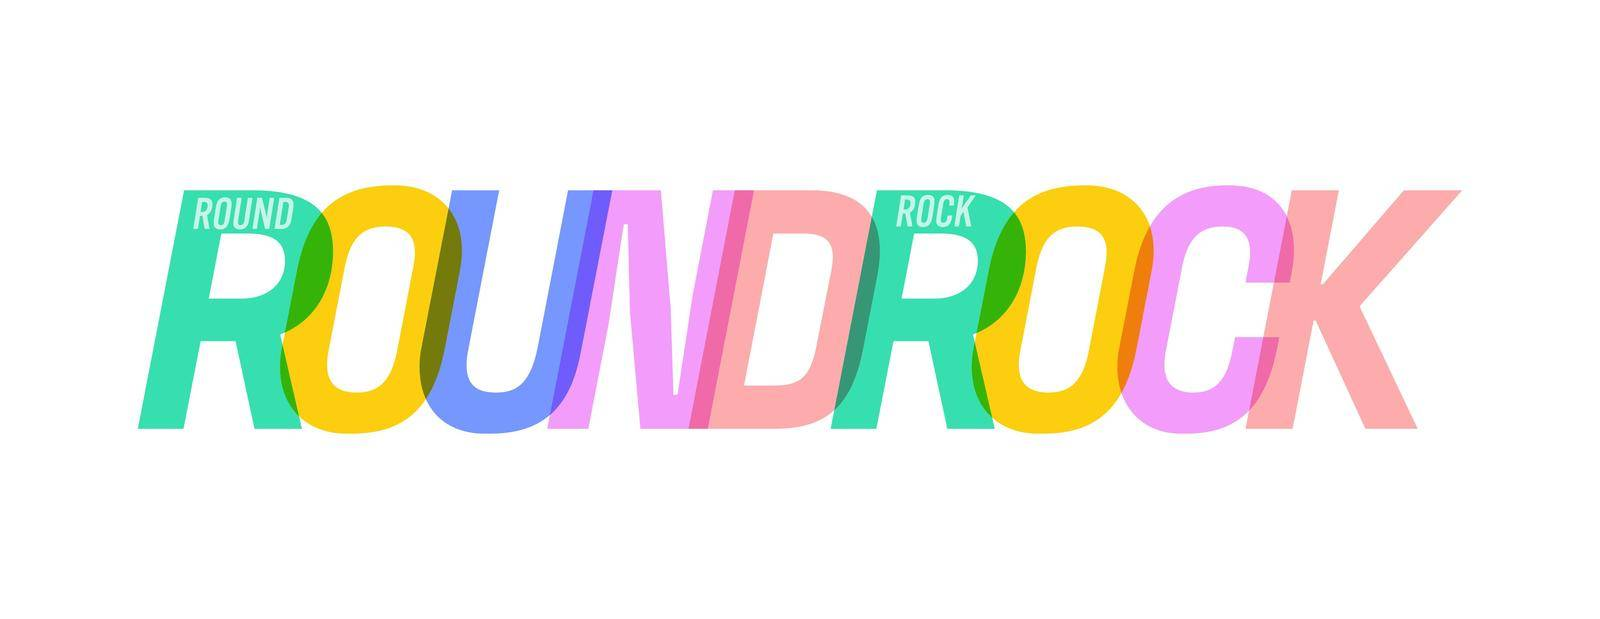 ROUND ROCK. The name of the city on a white background. Vector design template for poster, postcard, banner. Vector illustration.